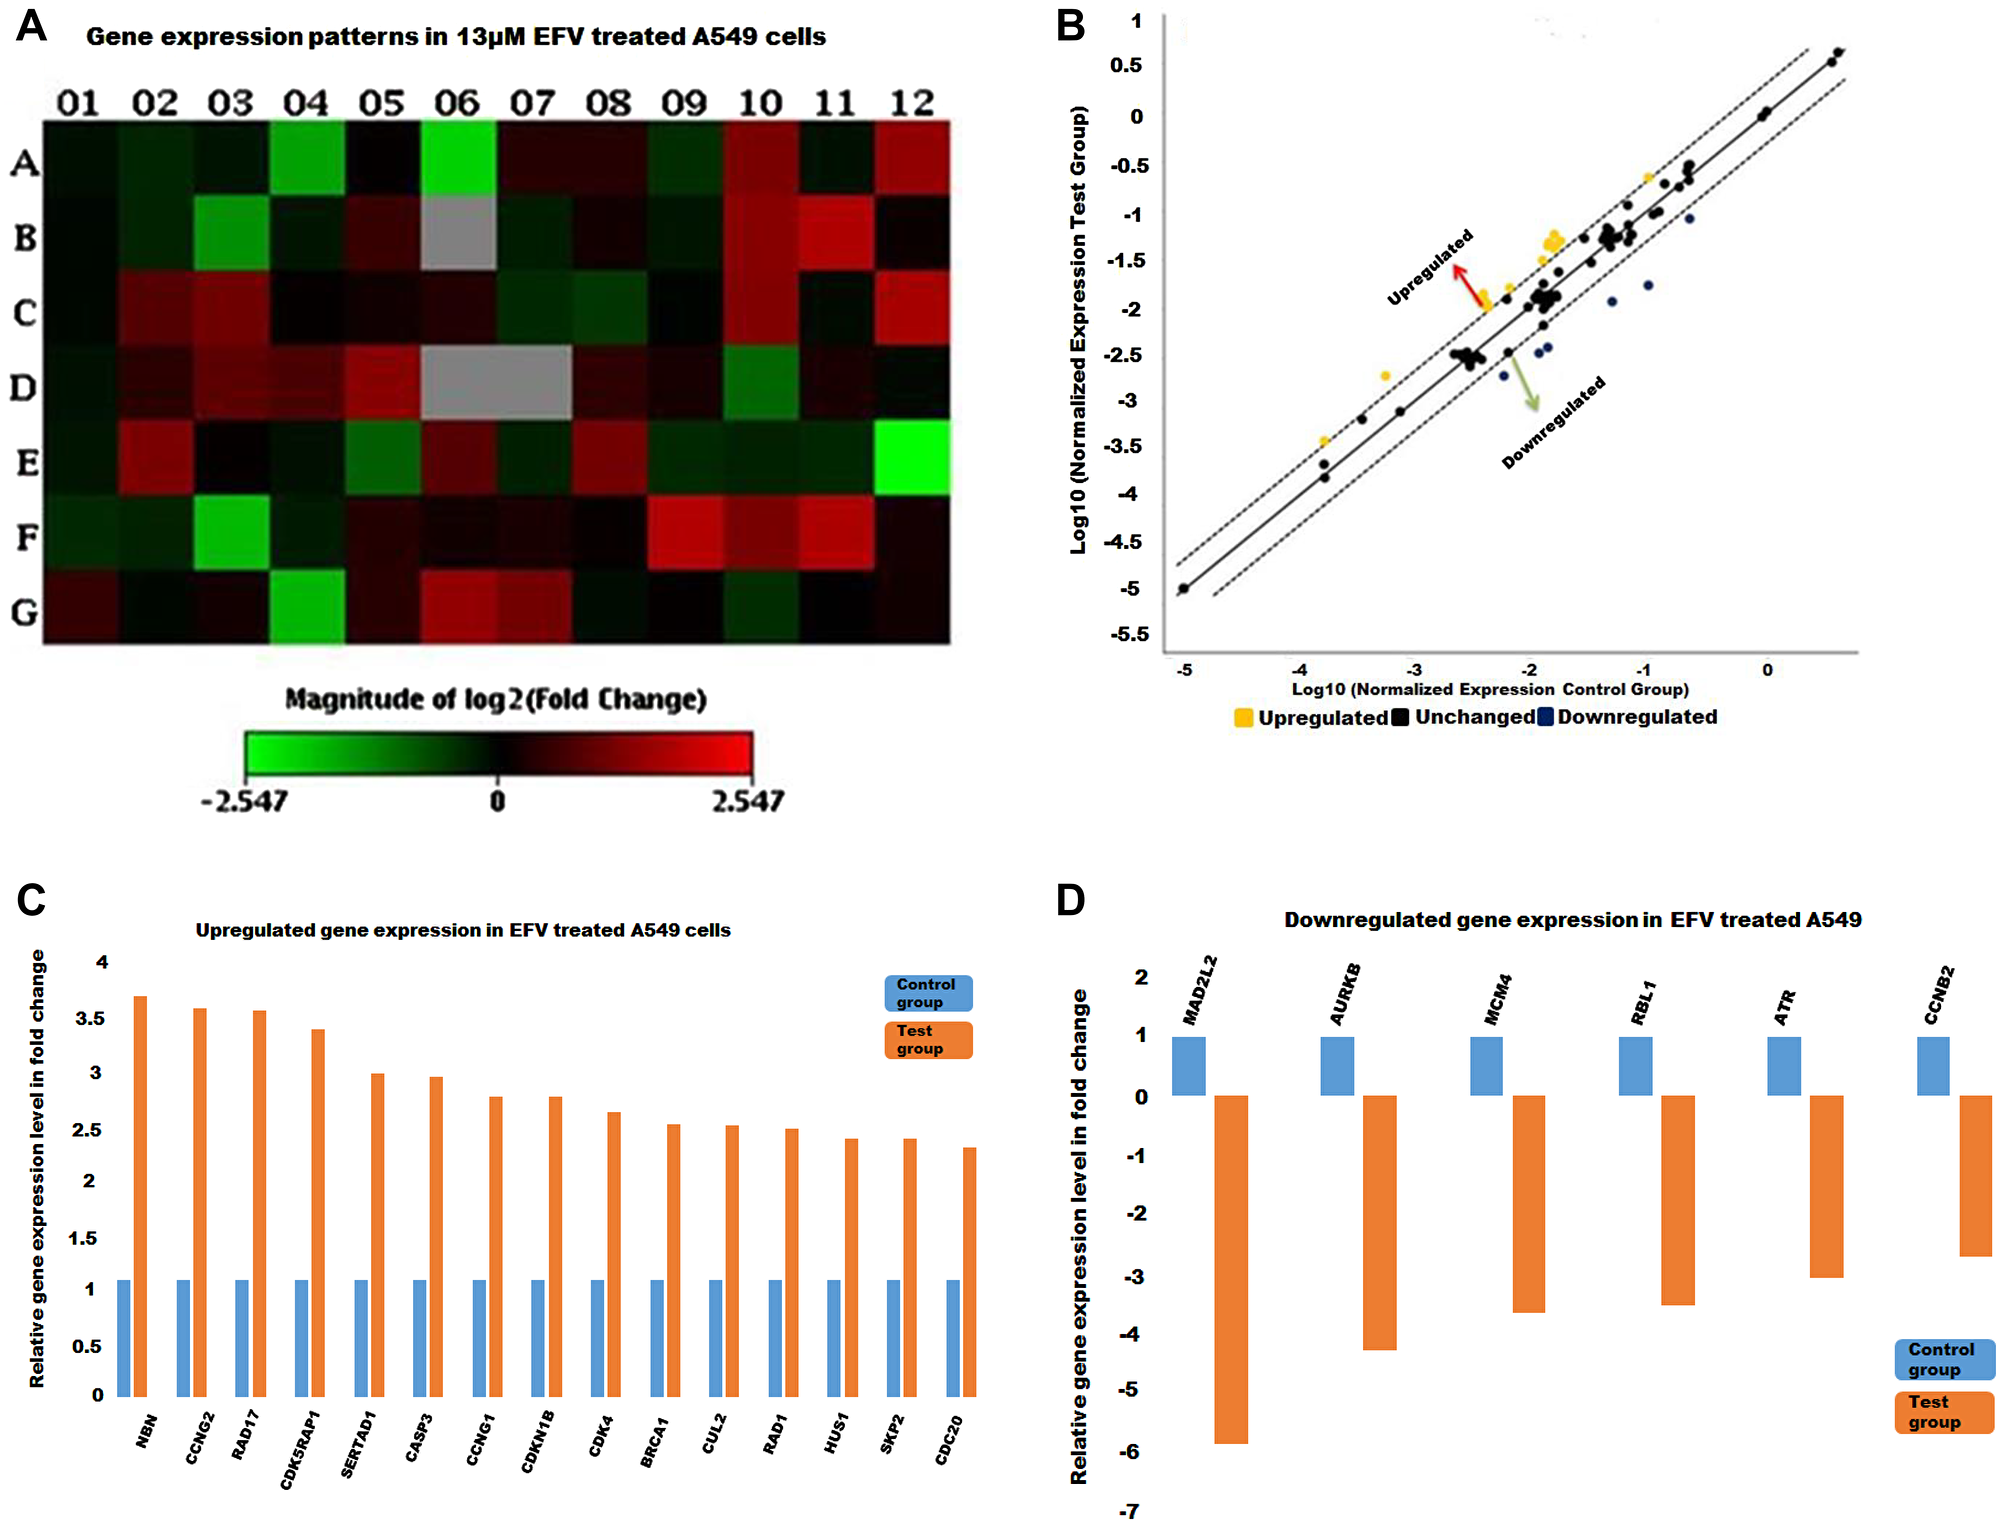 The cell cycle gene expression profile in EFV treated A549 cells.